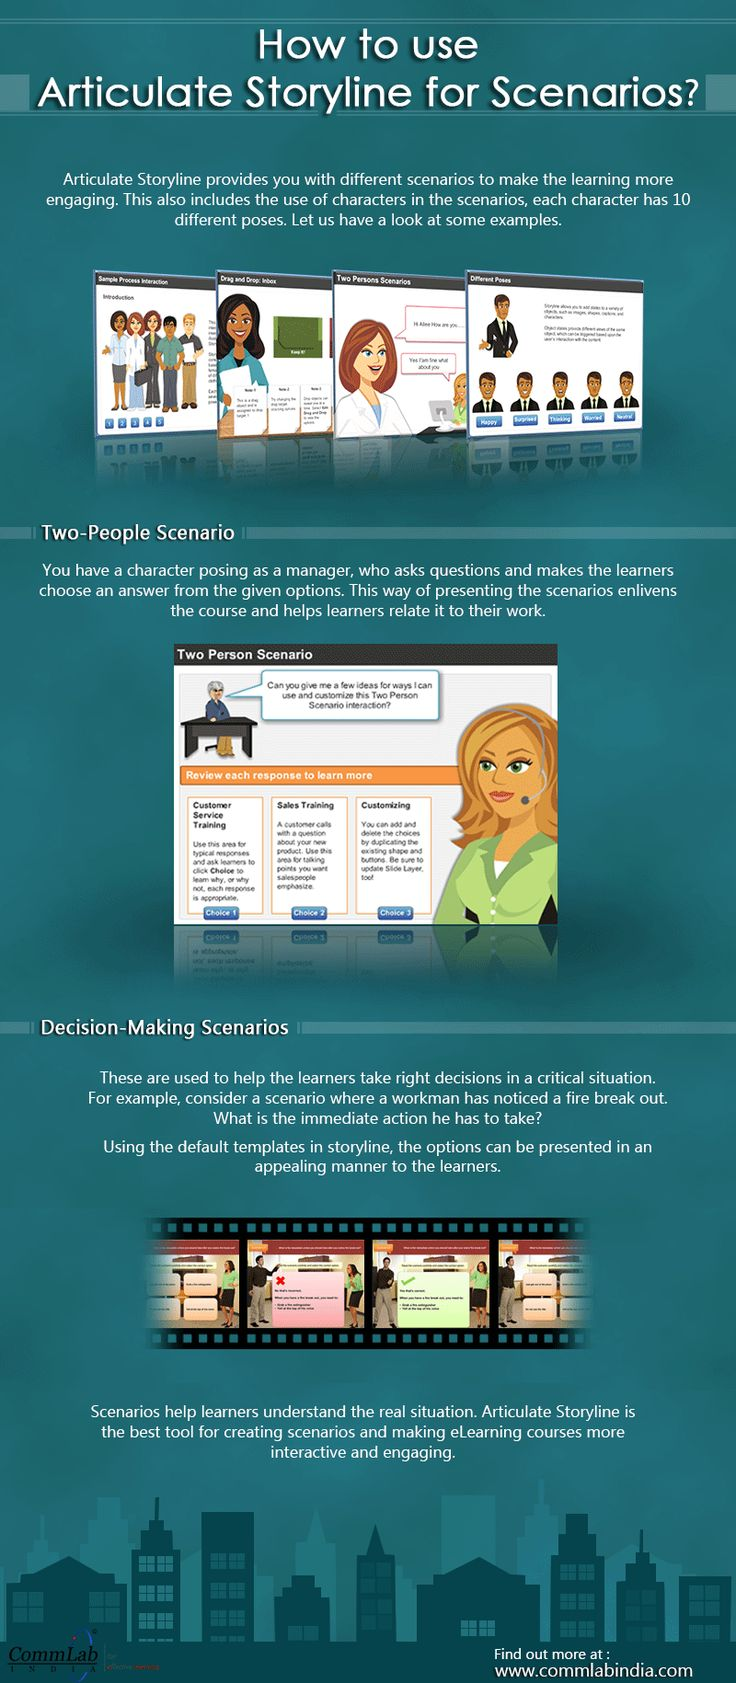 Why is Articulate Storyline Ideal for Developing #Scenarios – An #Infographic